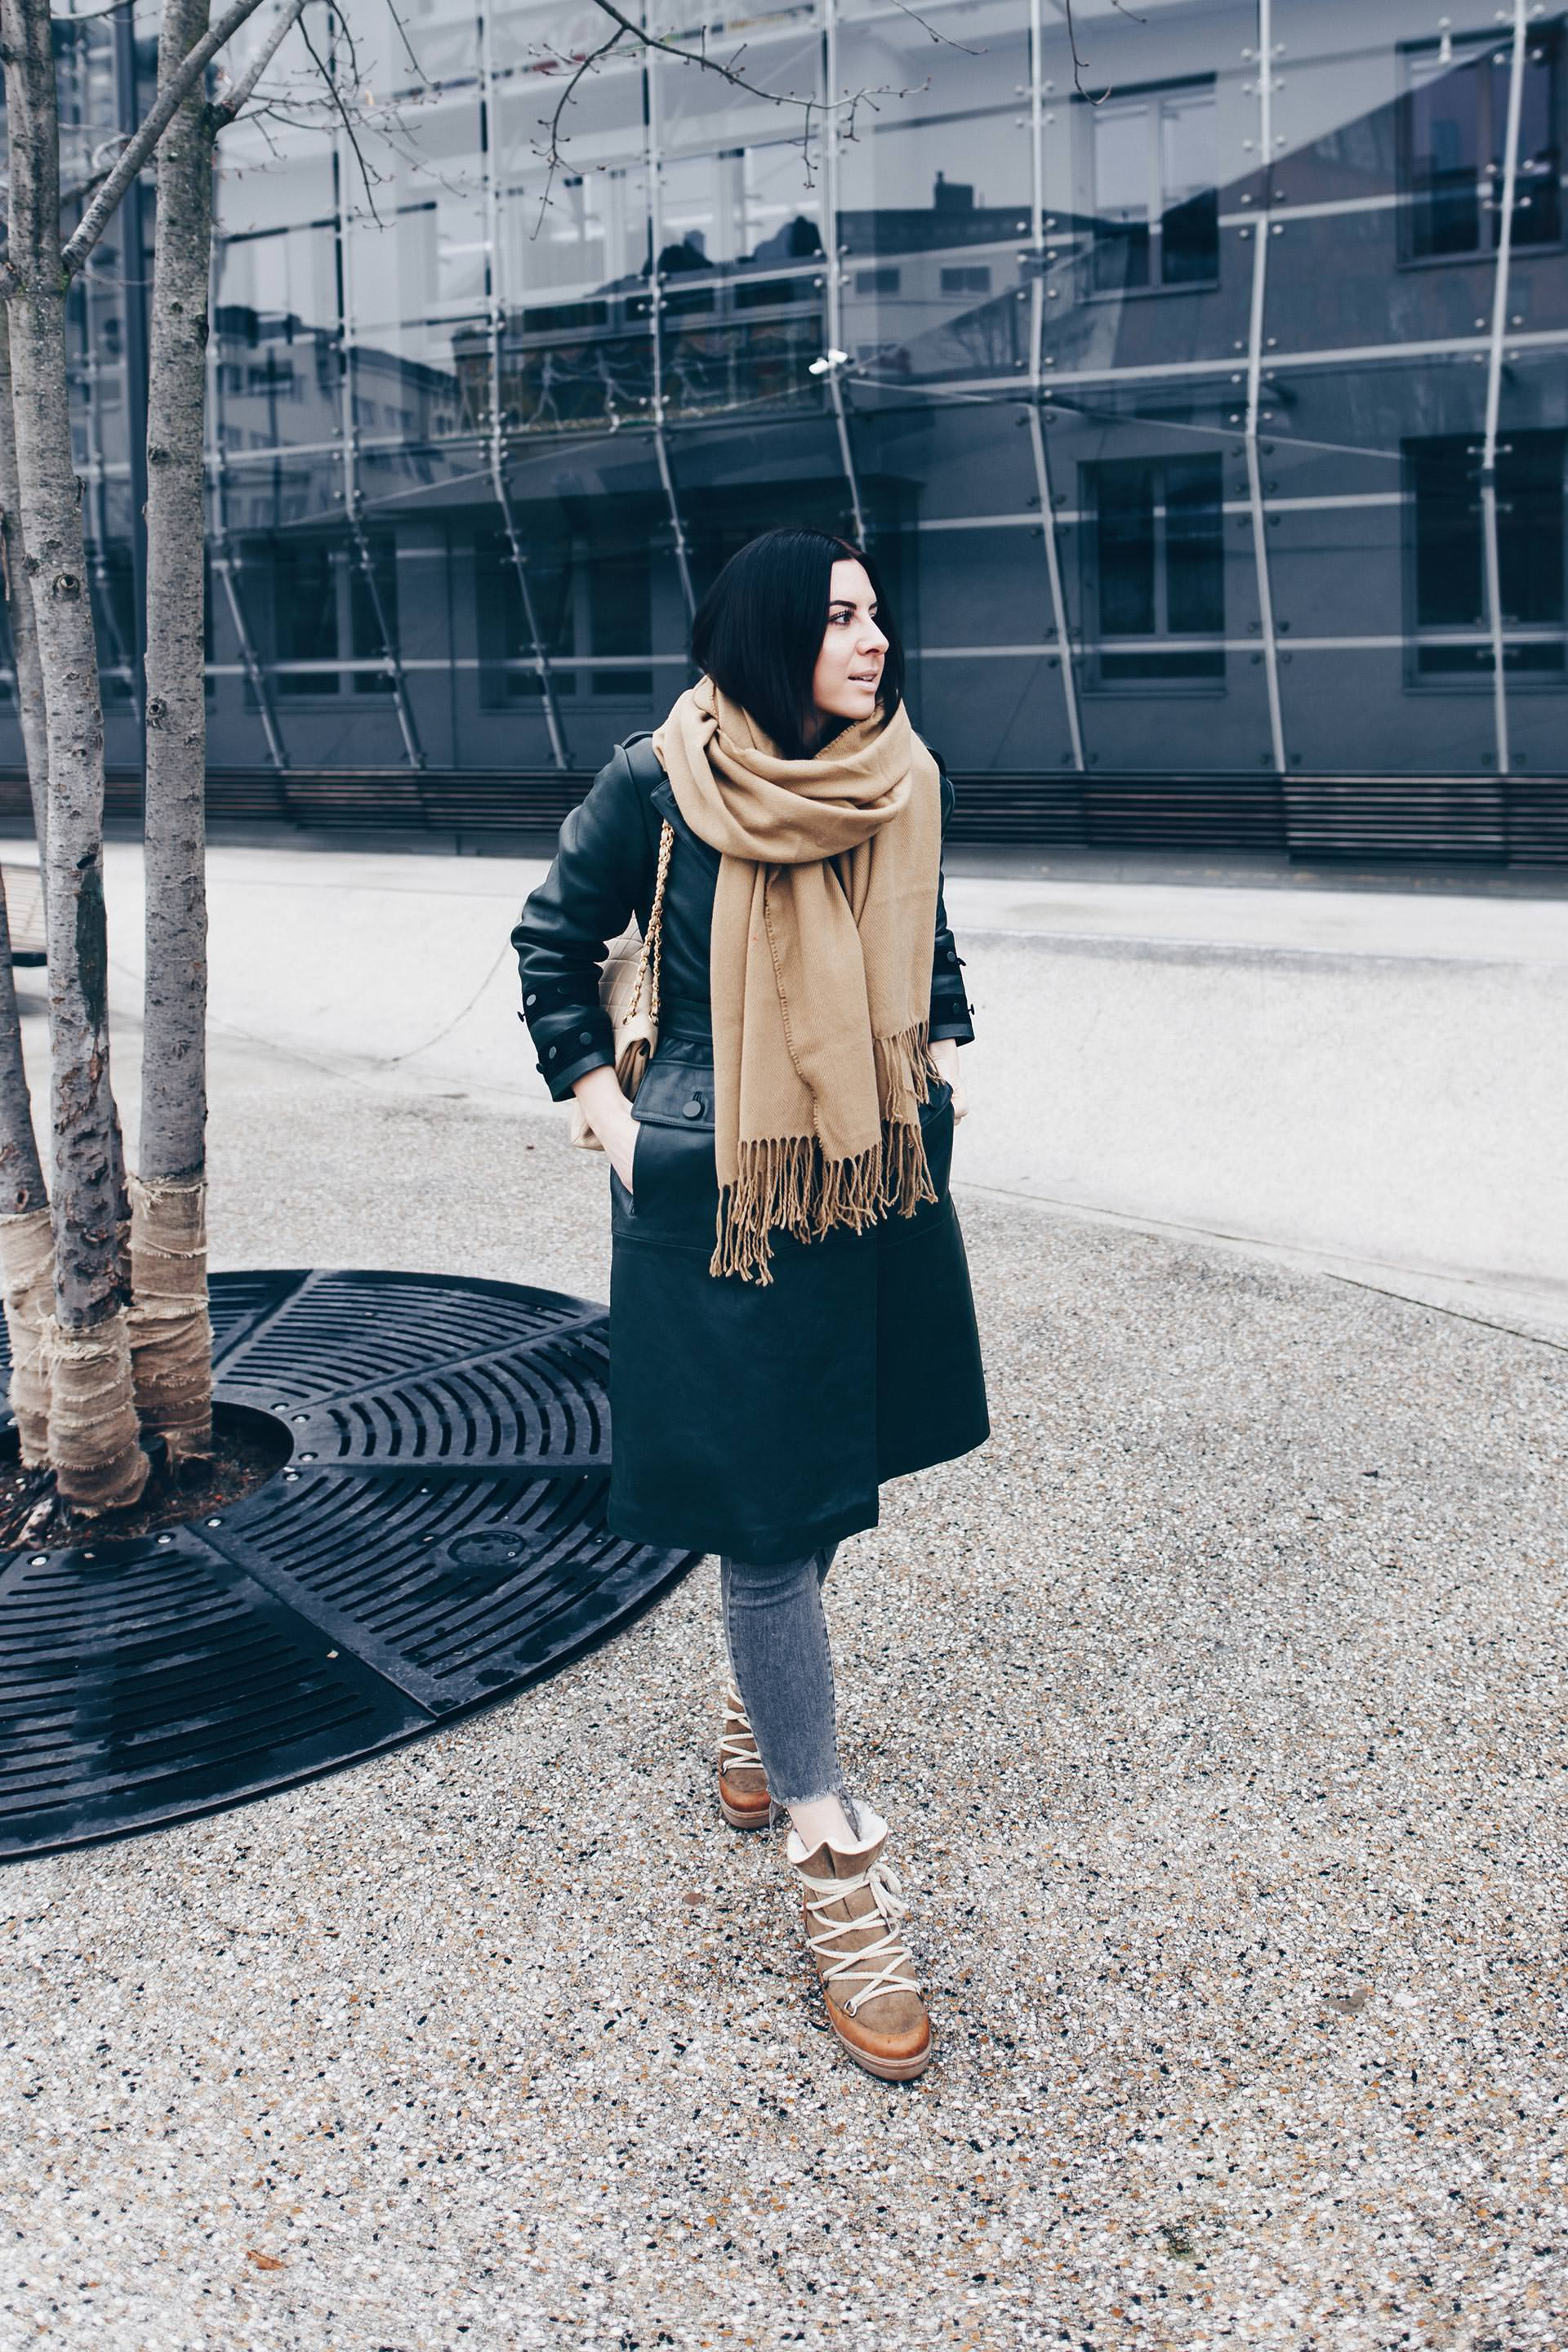 Winter Outfit mit Ledermantel aus der Zara Studio Collection 2017, Isabel Marant Nowles Boots, Skinny Jeans, Chanel Vintage Tasche, Streetstyle im Winter, Fashion Blogger Outfits, Modeblog Innsbruck, www.whoismocca.com